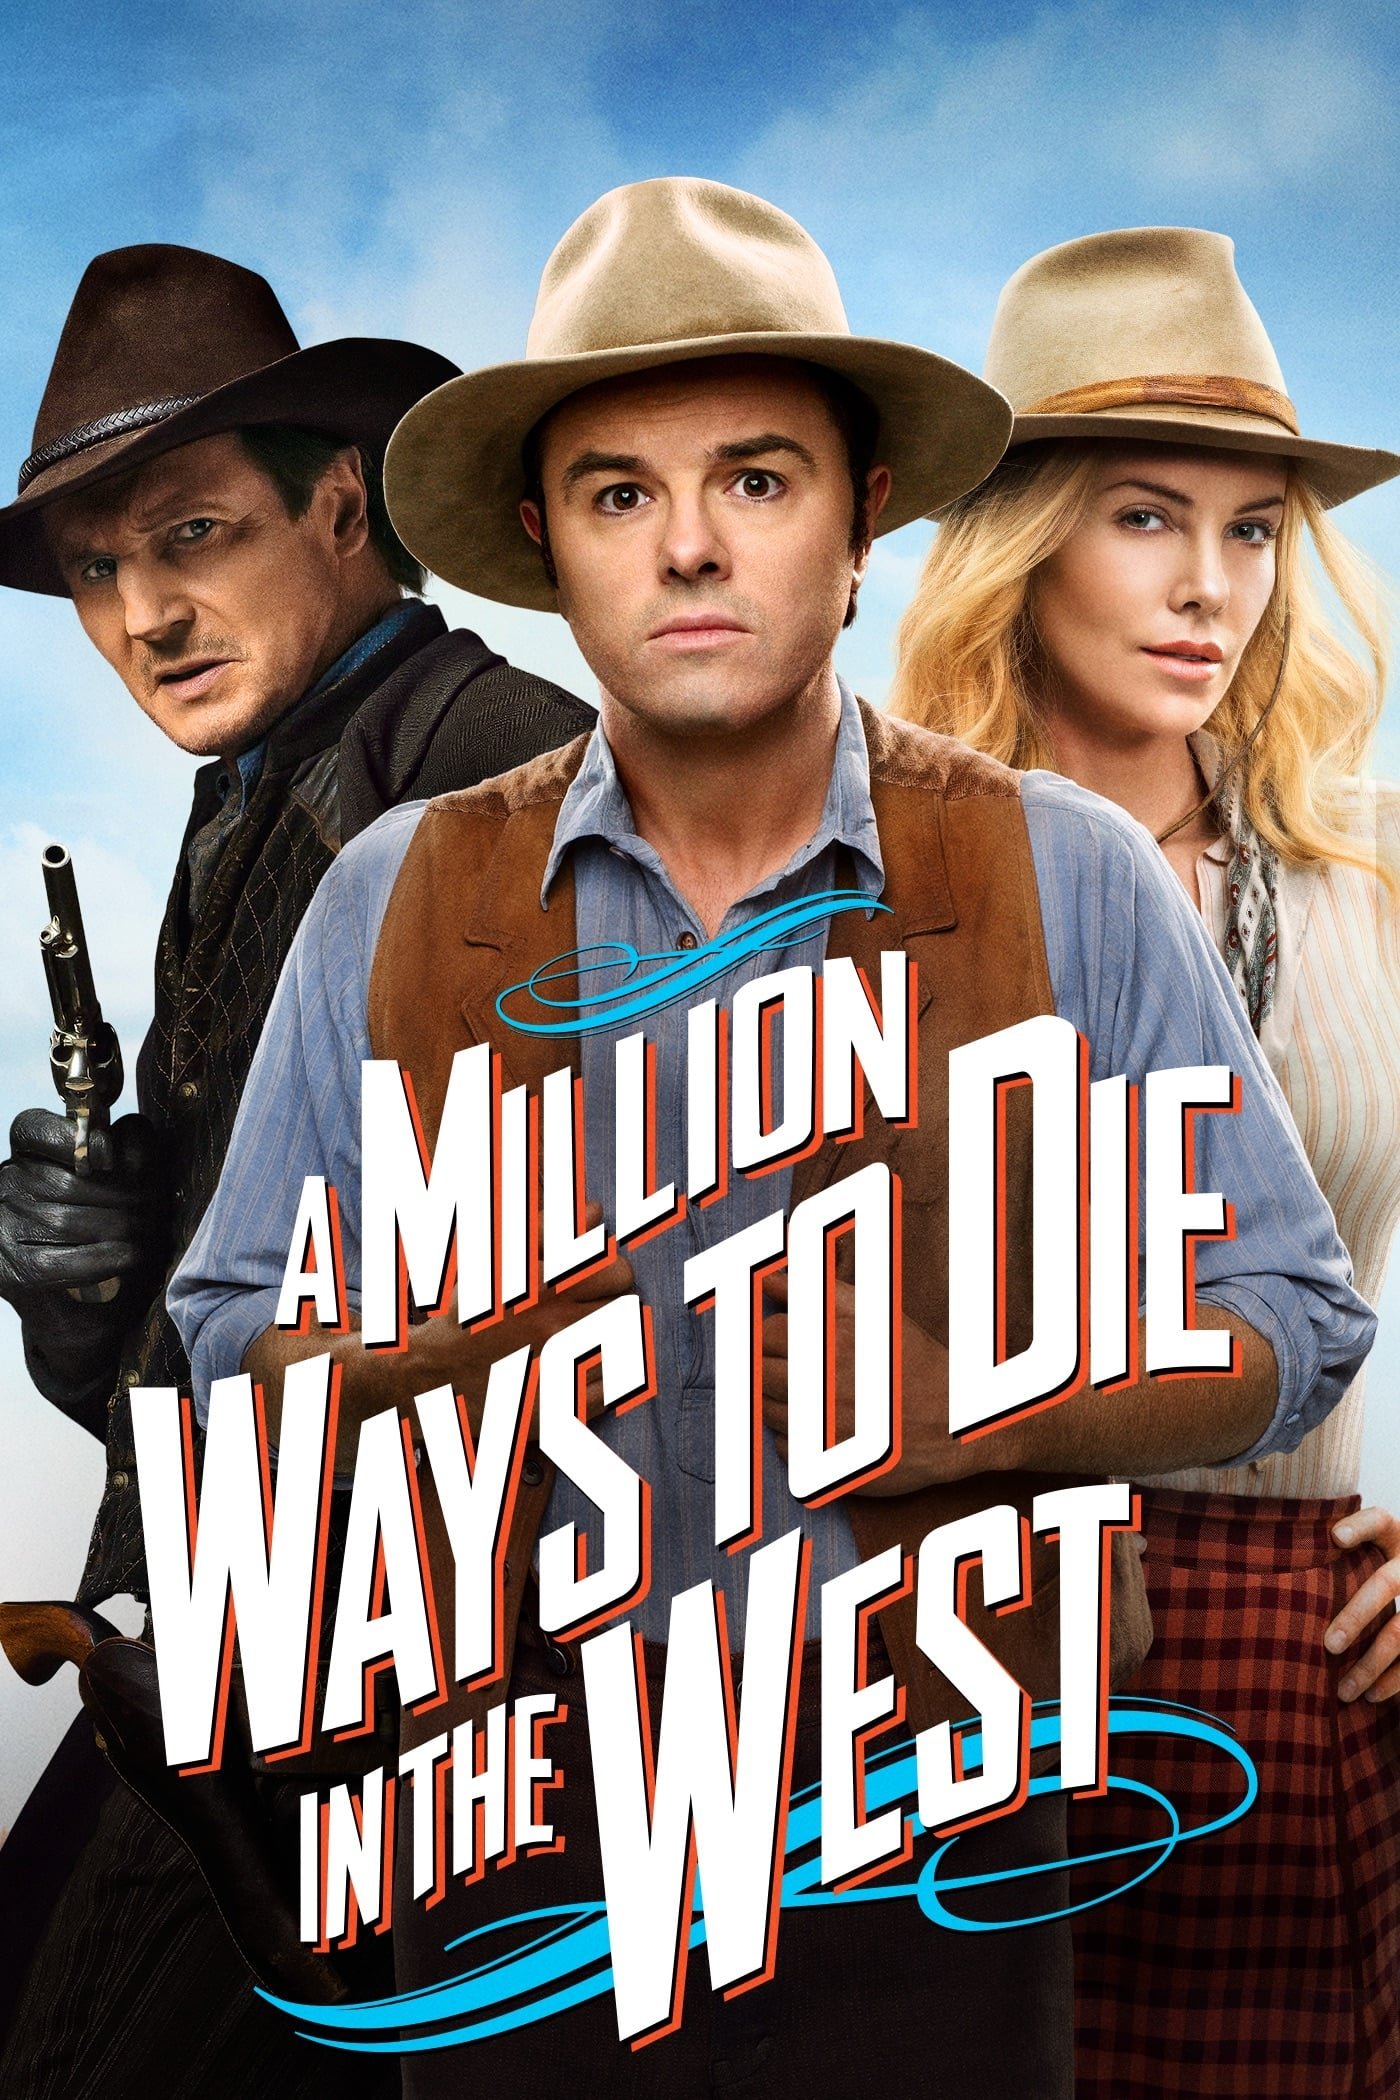 Image A Million Ways to Die in the West